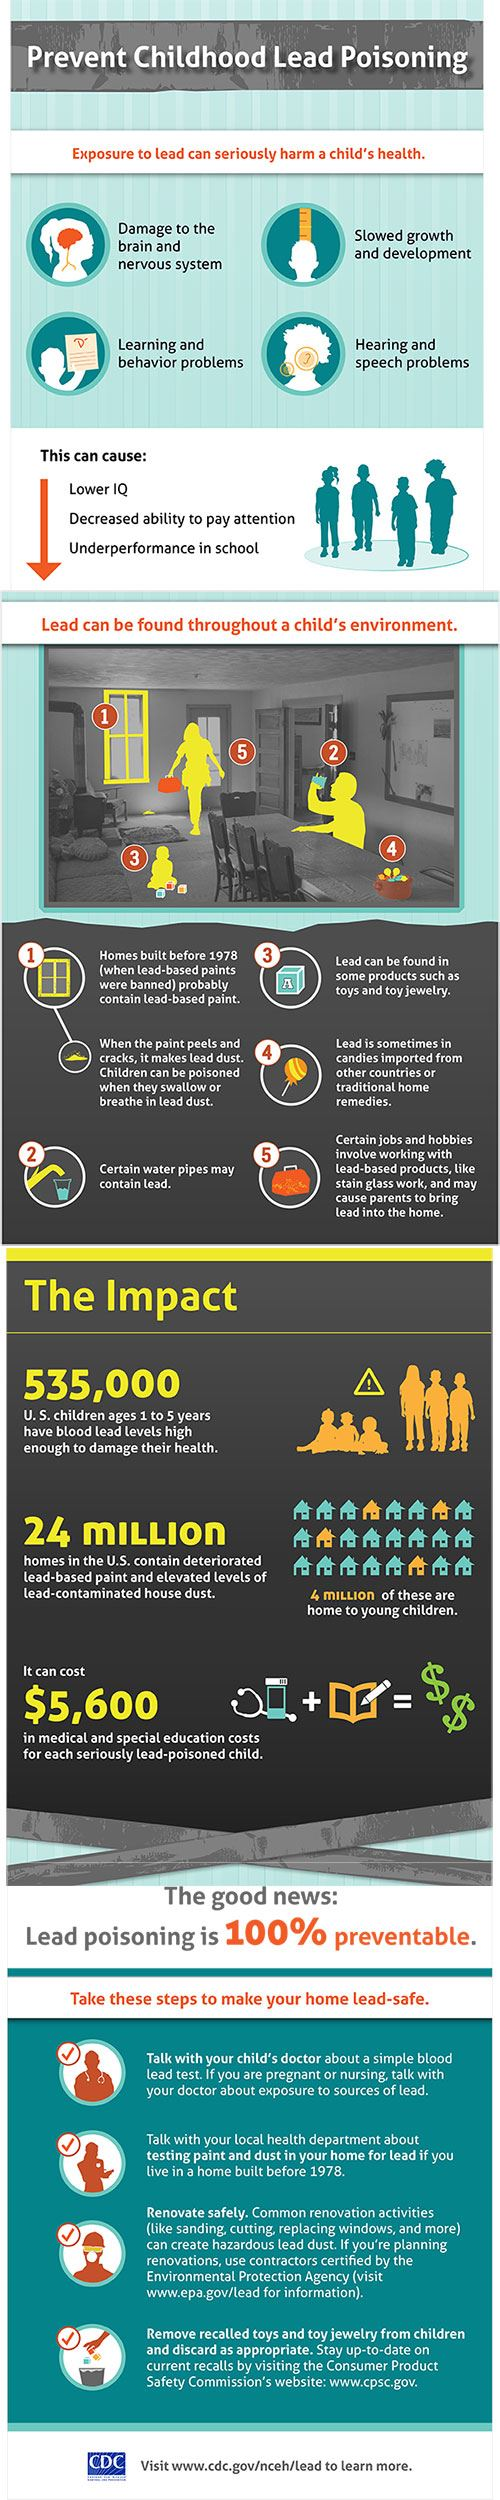 Lead poisoning printable infographic regarding lead poisoning prevention.